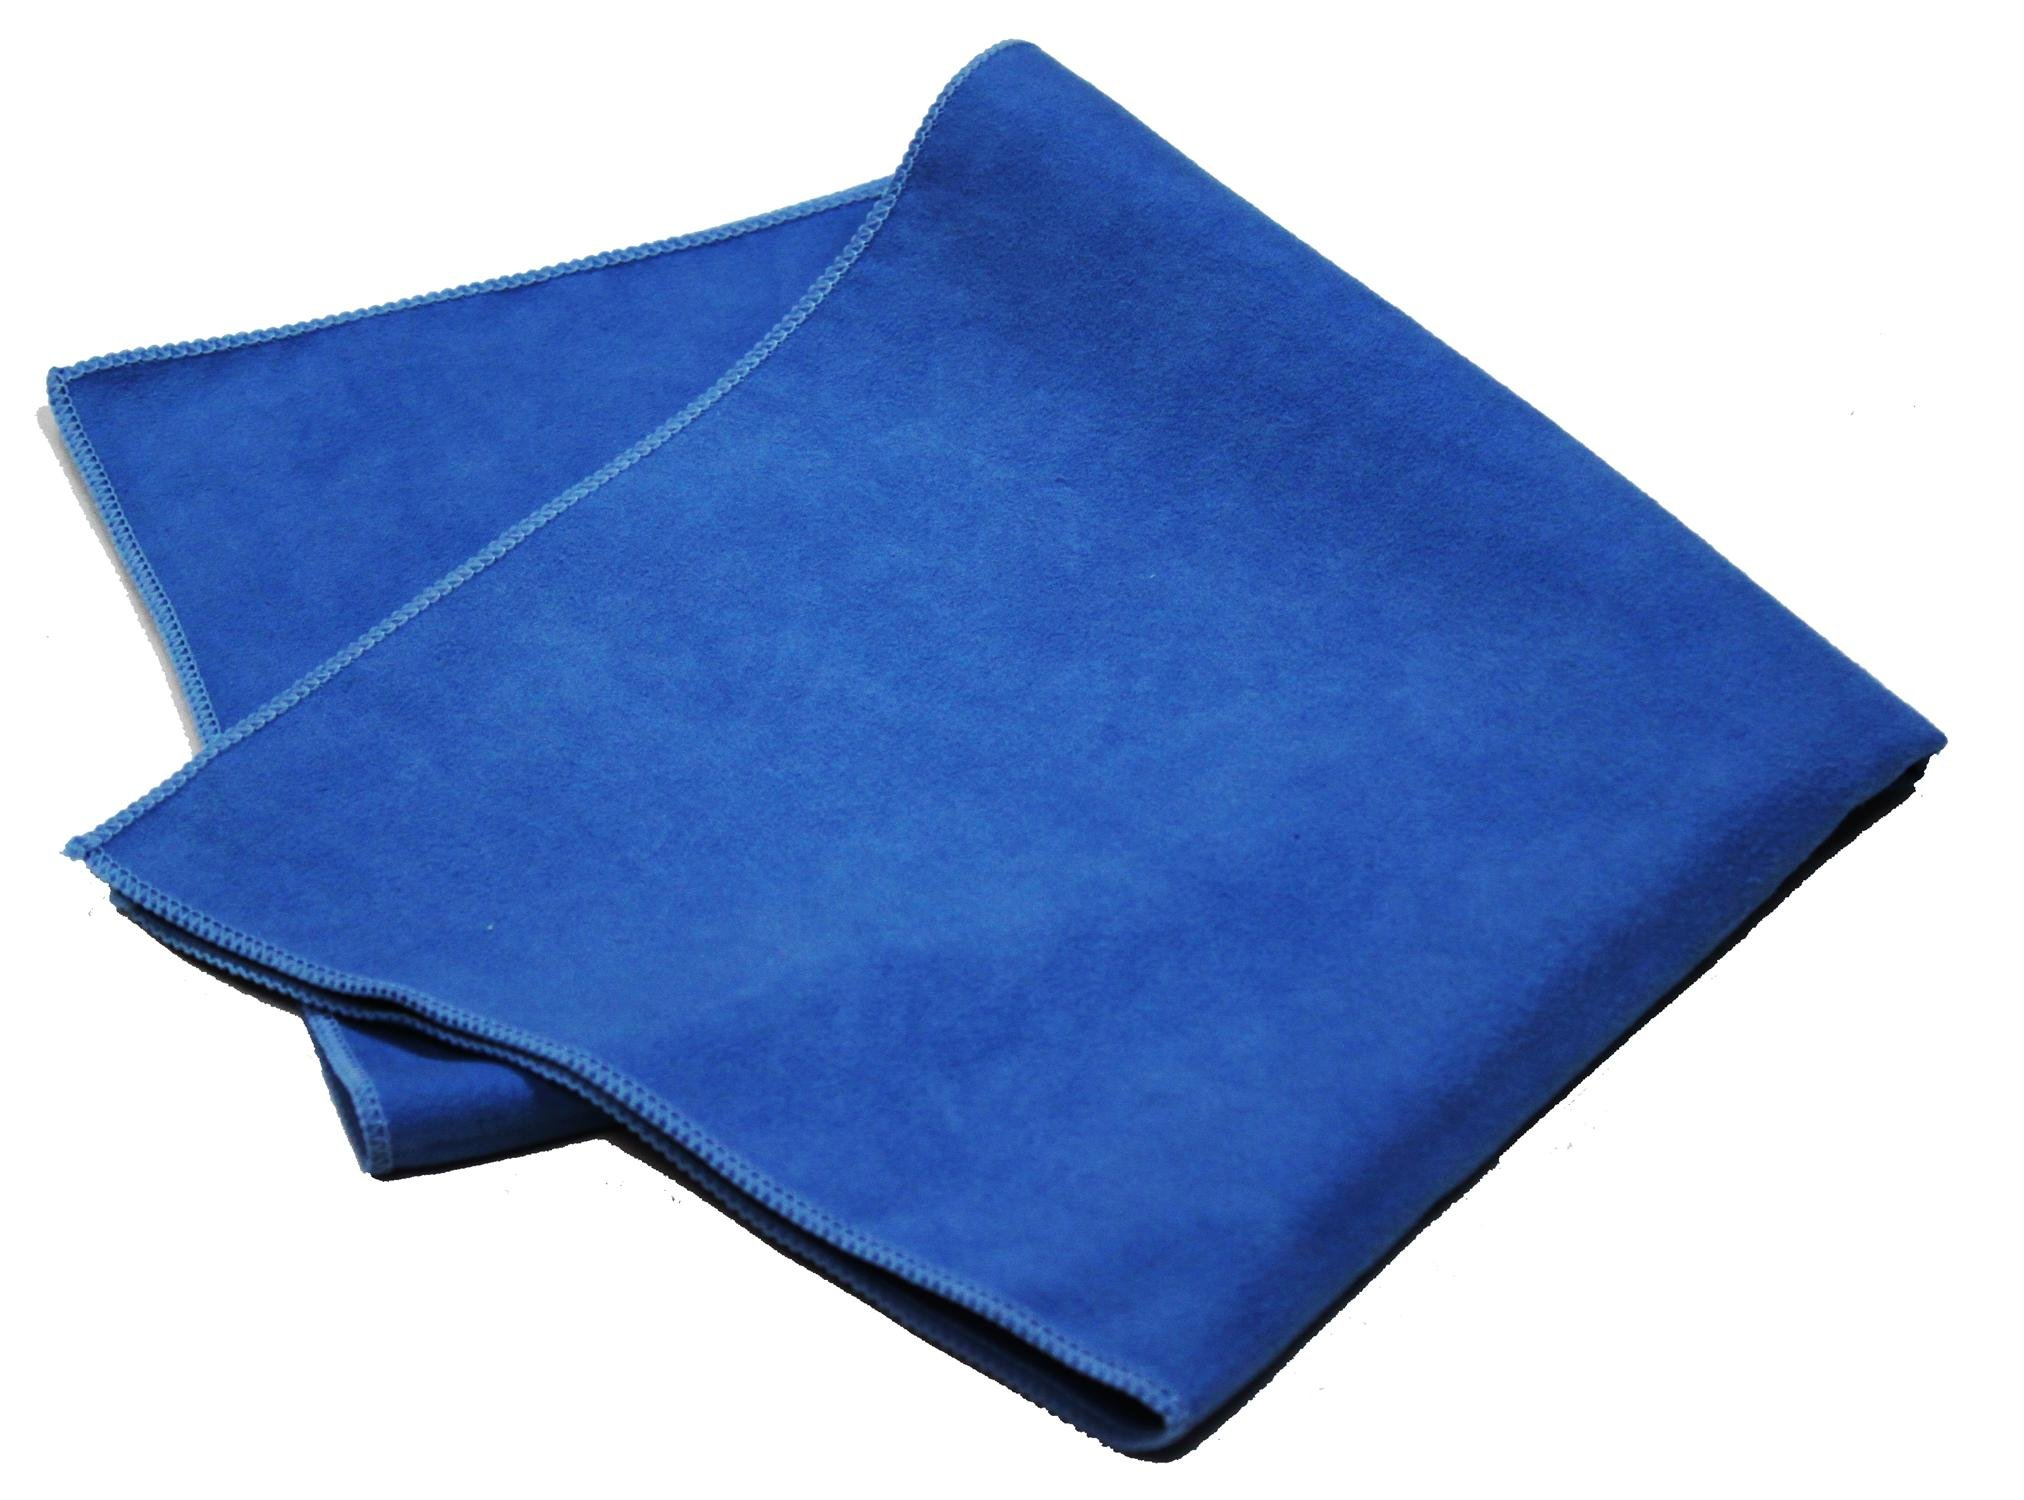 Pro-Clean Basics A73050 Microfiber Suede Cleaning and Polishing Cloth, 16in x 16in: 12-Pack